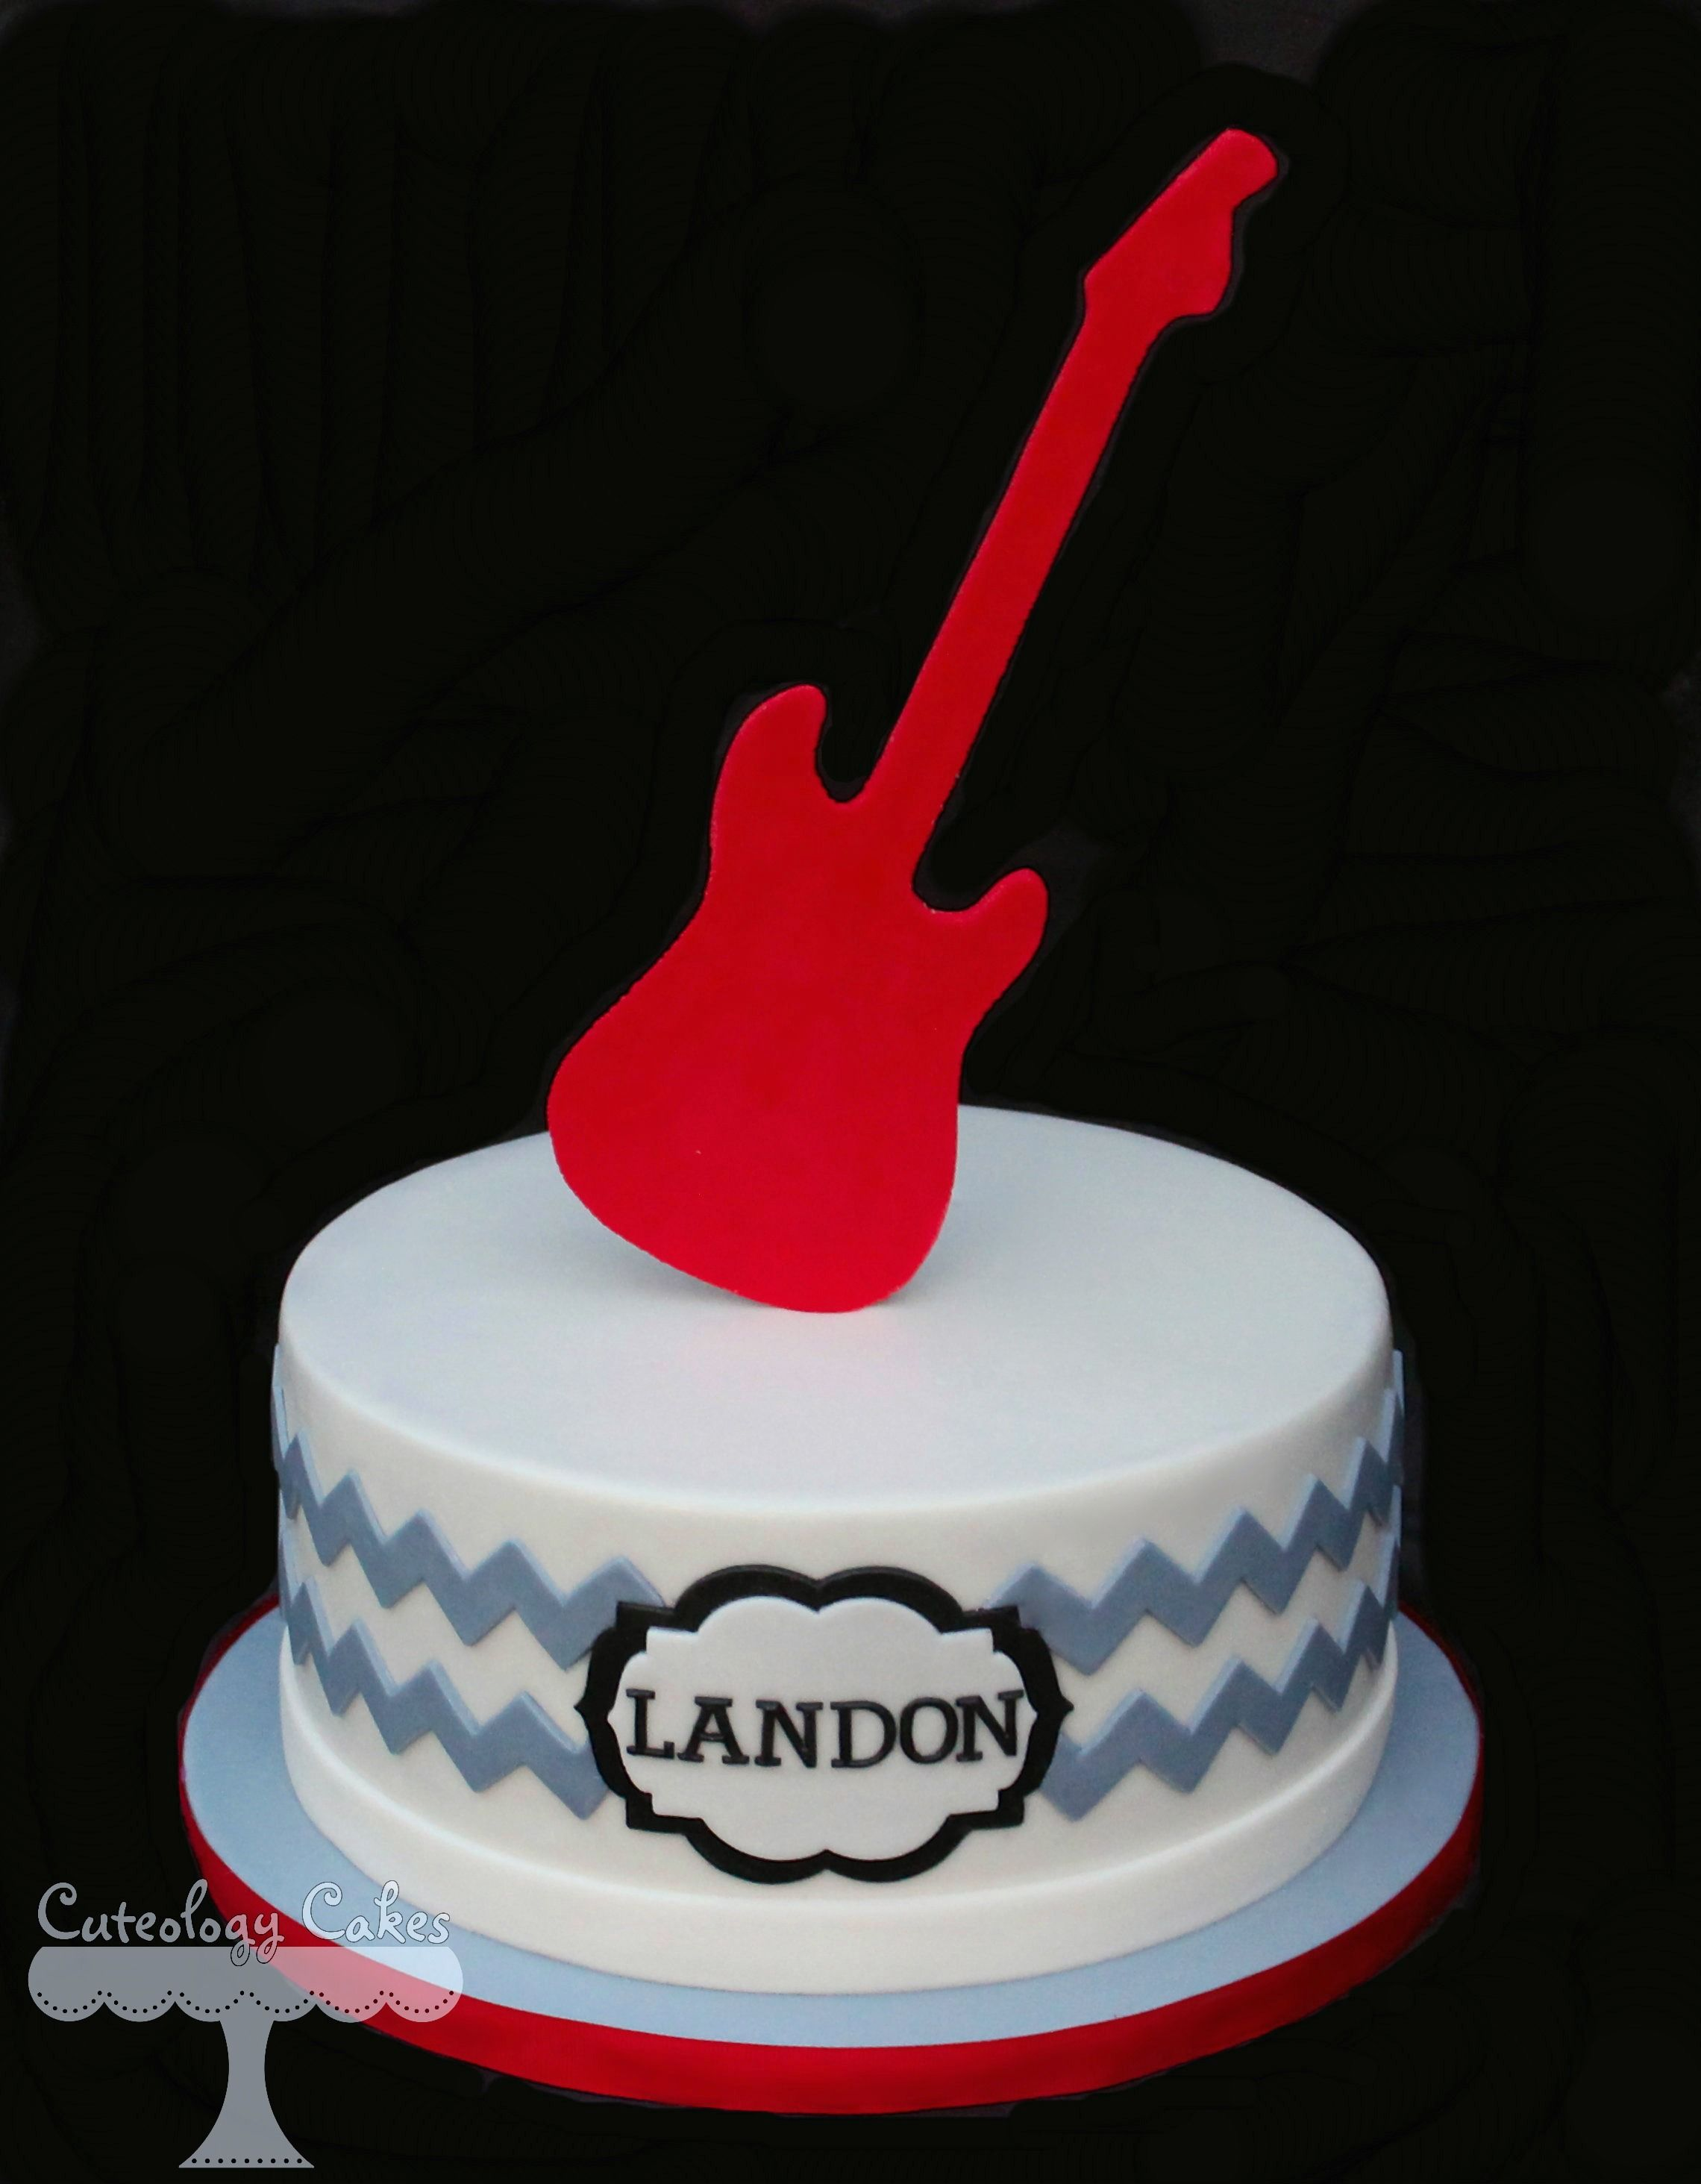 Chevron Rock Star Cake with electric guitar topper wwwfacebook